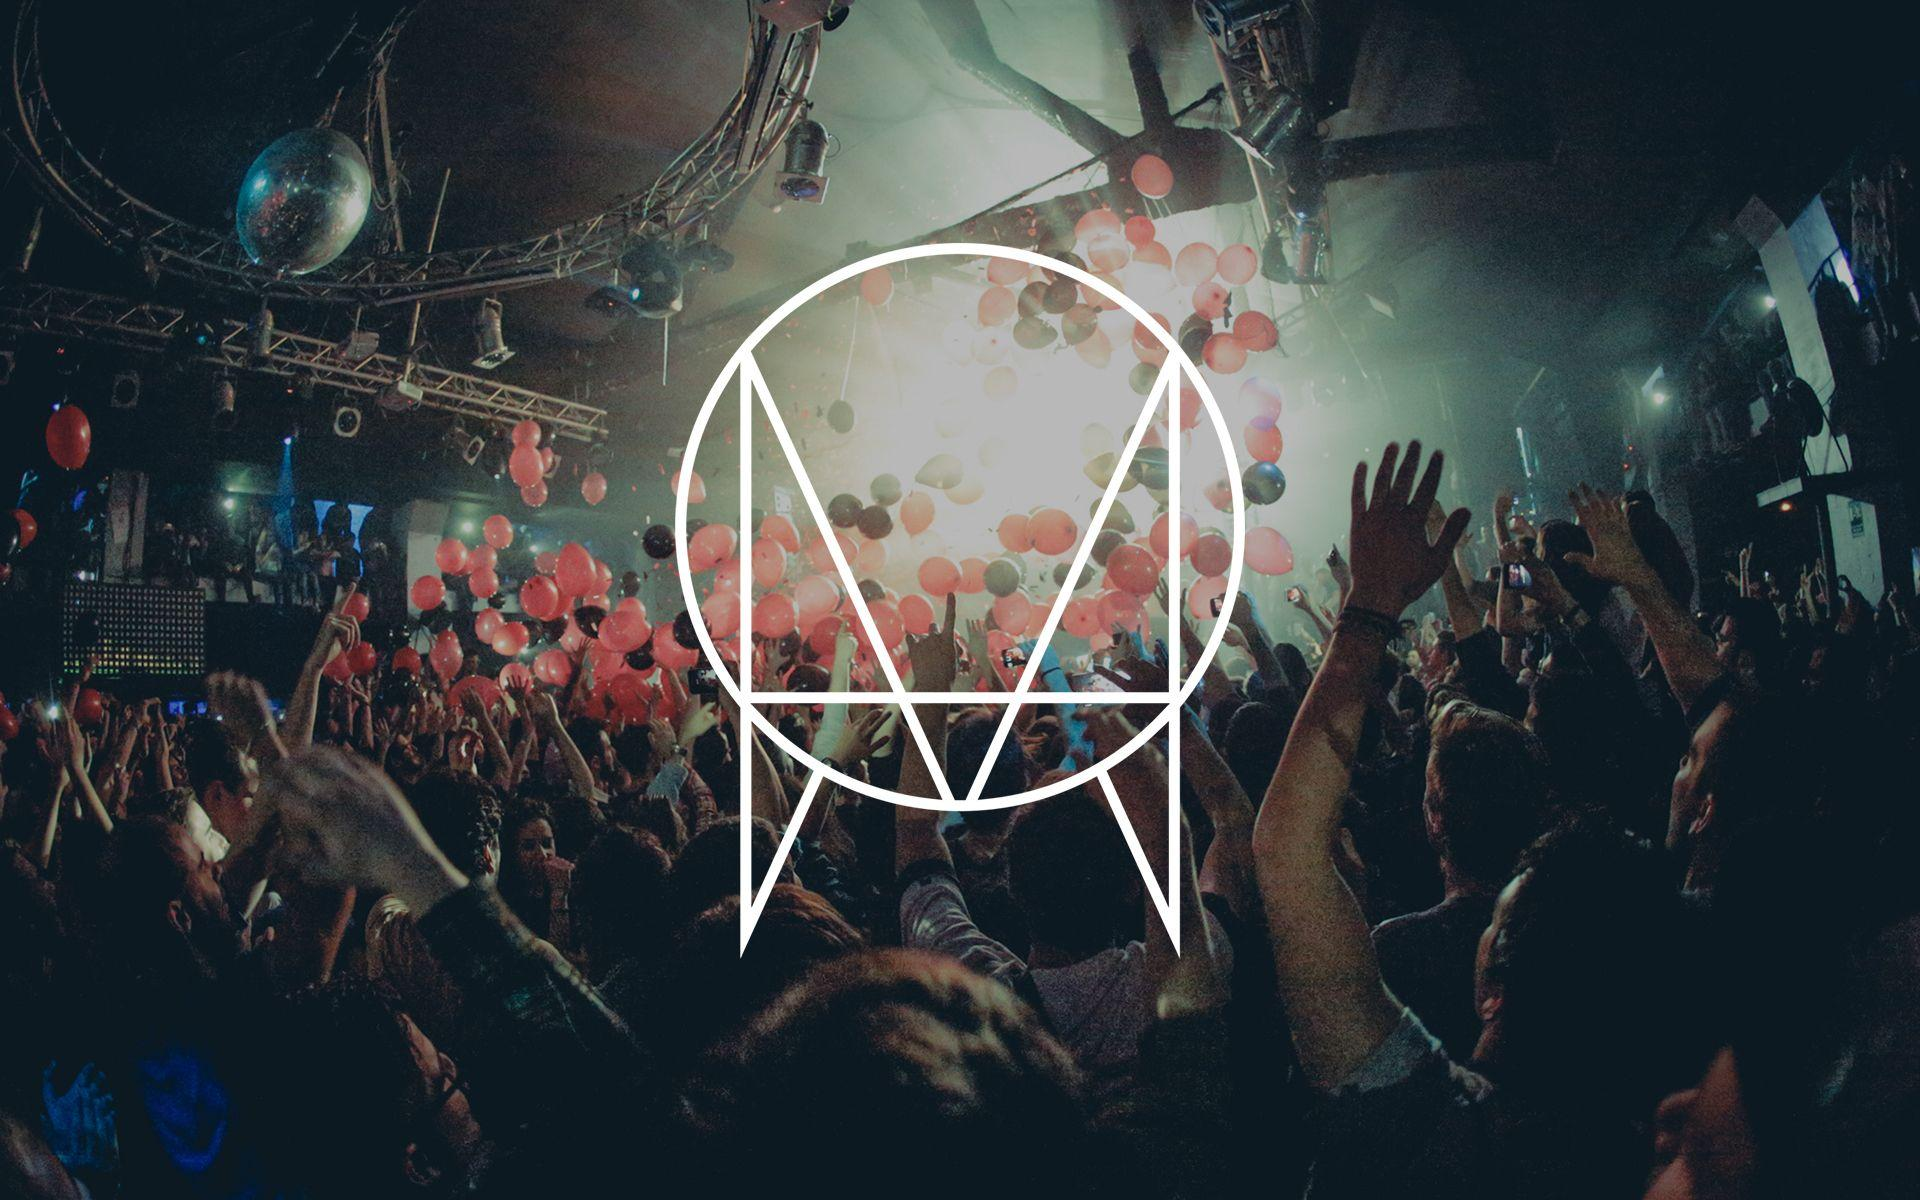 Skrillex Dropping New Tracks With OWSLA 'Worldwide Broadcast